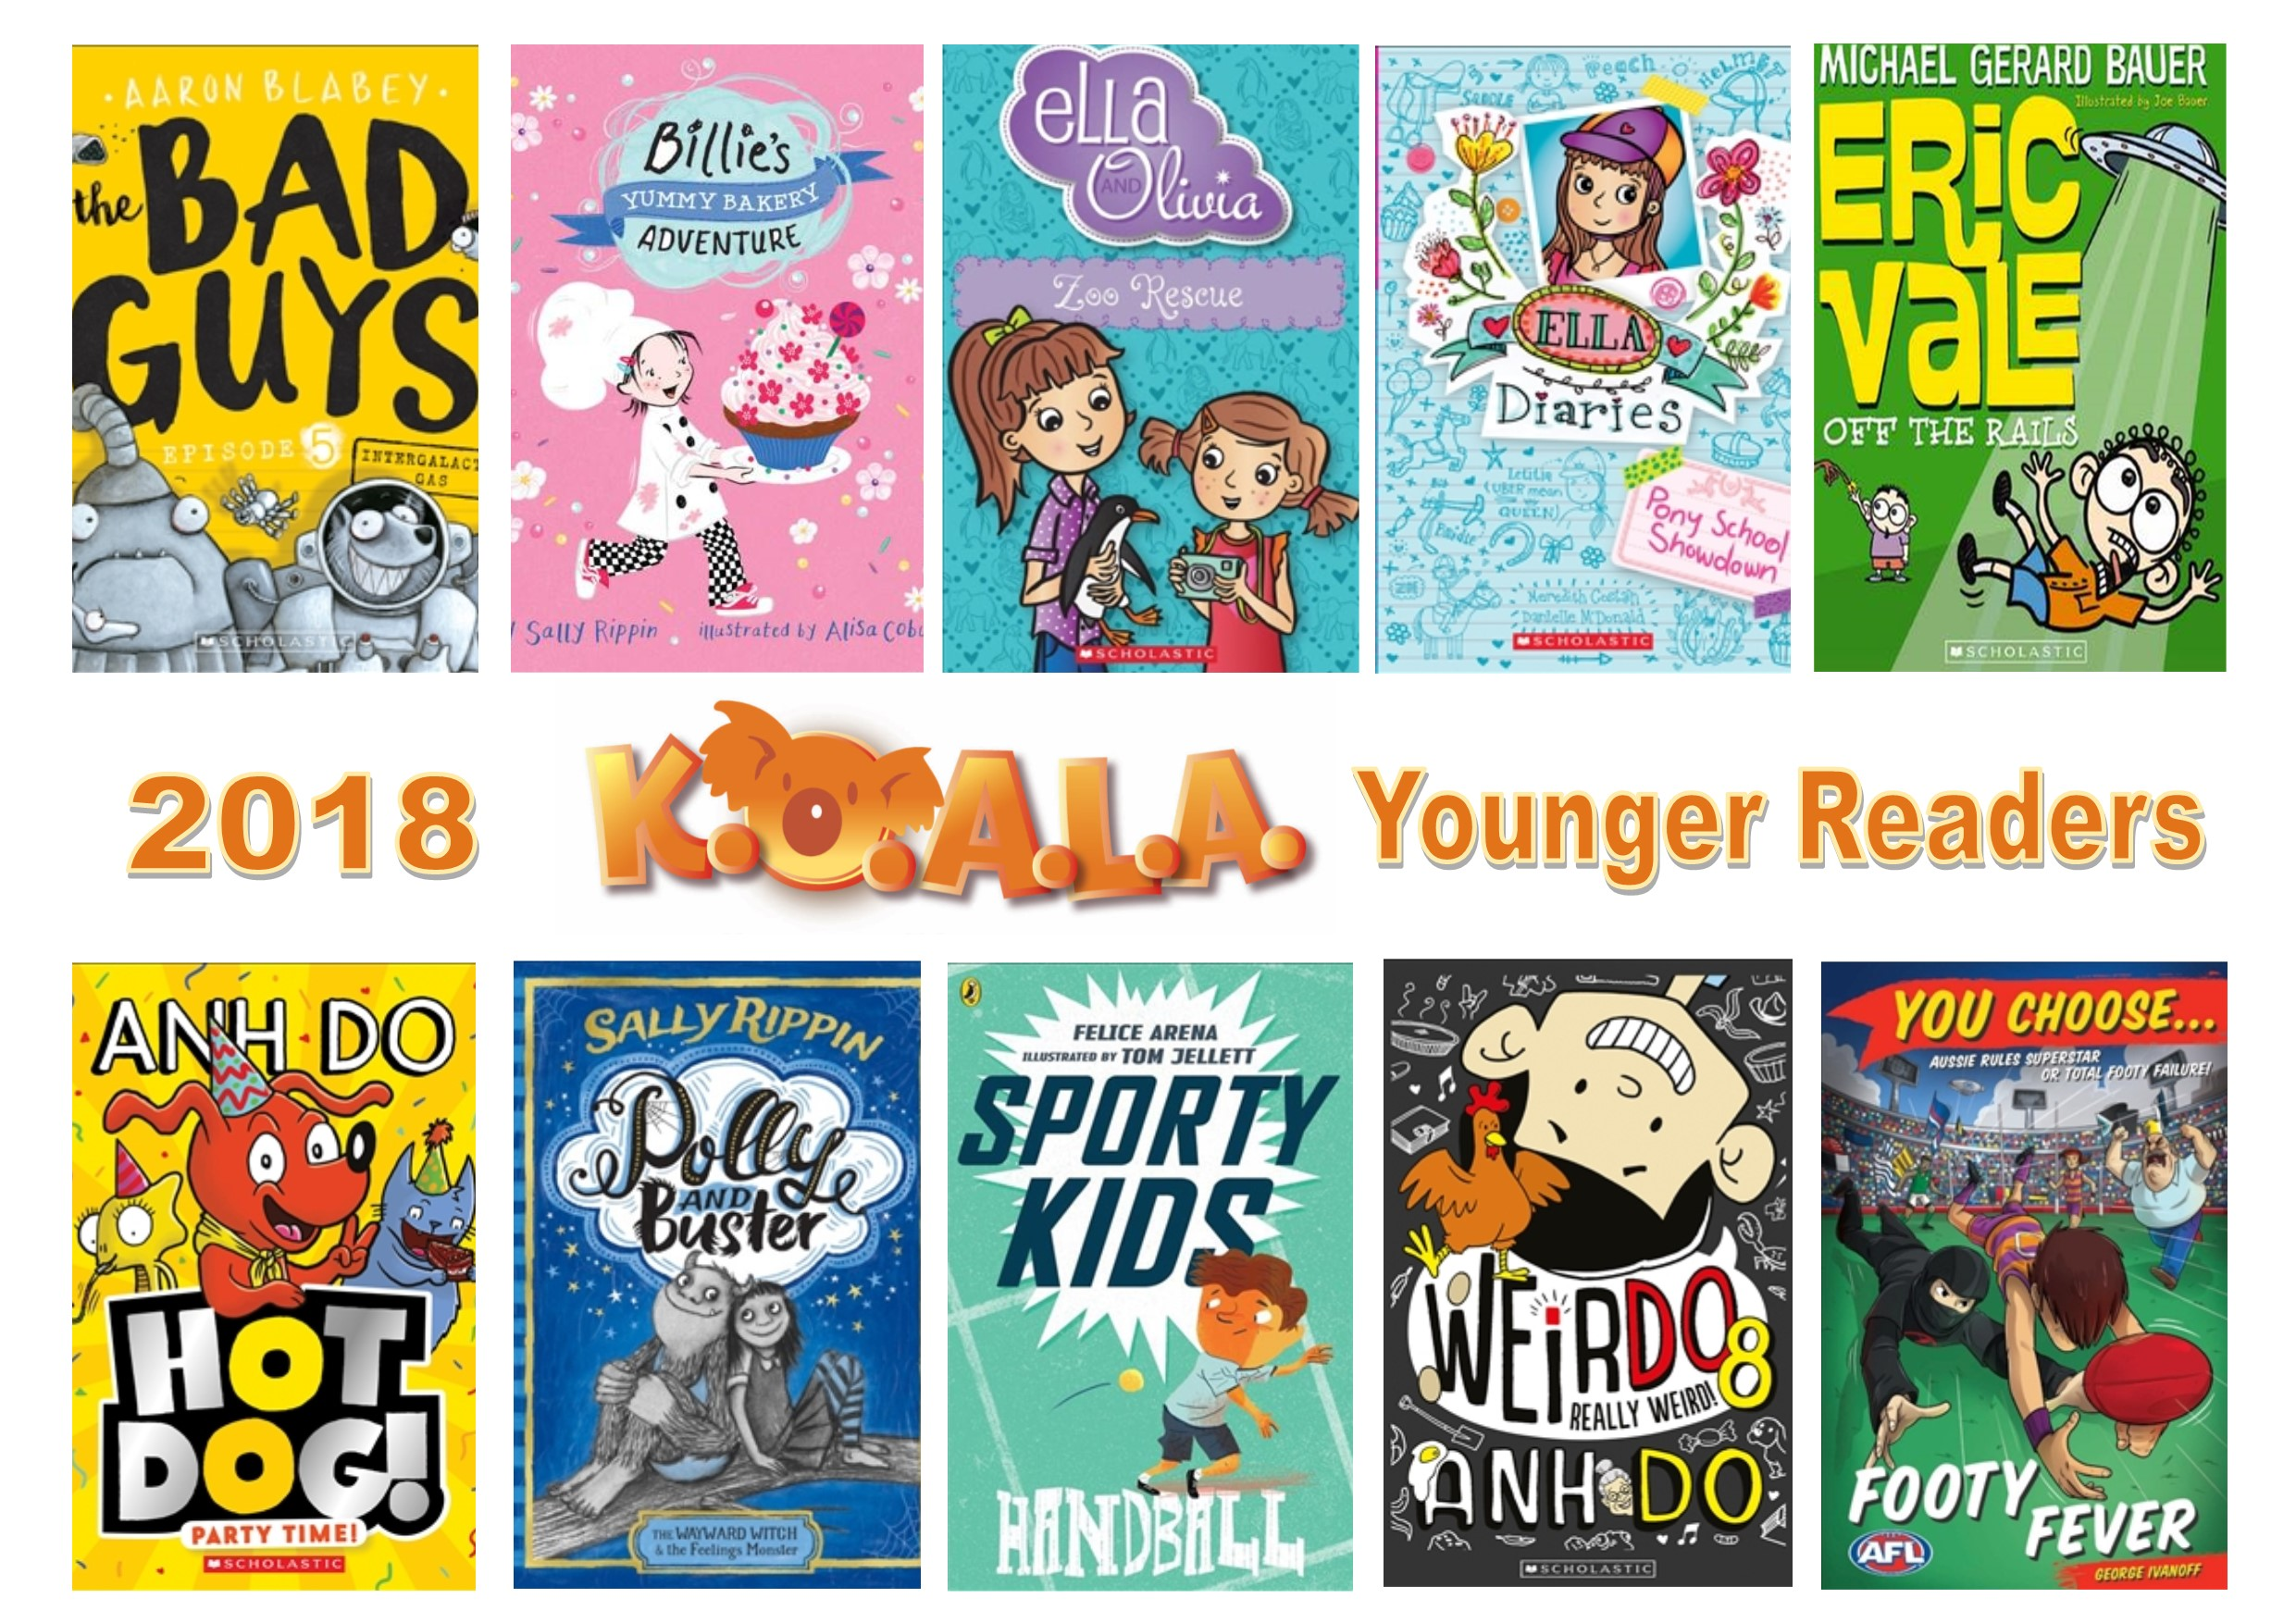 KOALA+Shortlist+Younger+Readers+2018+JPeg.jpg